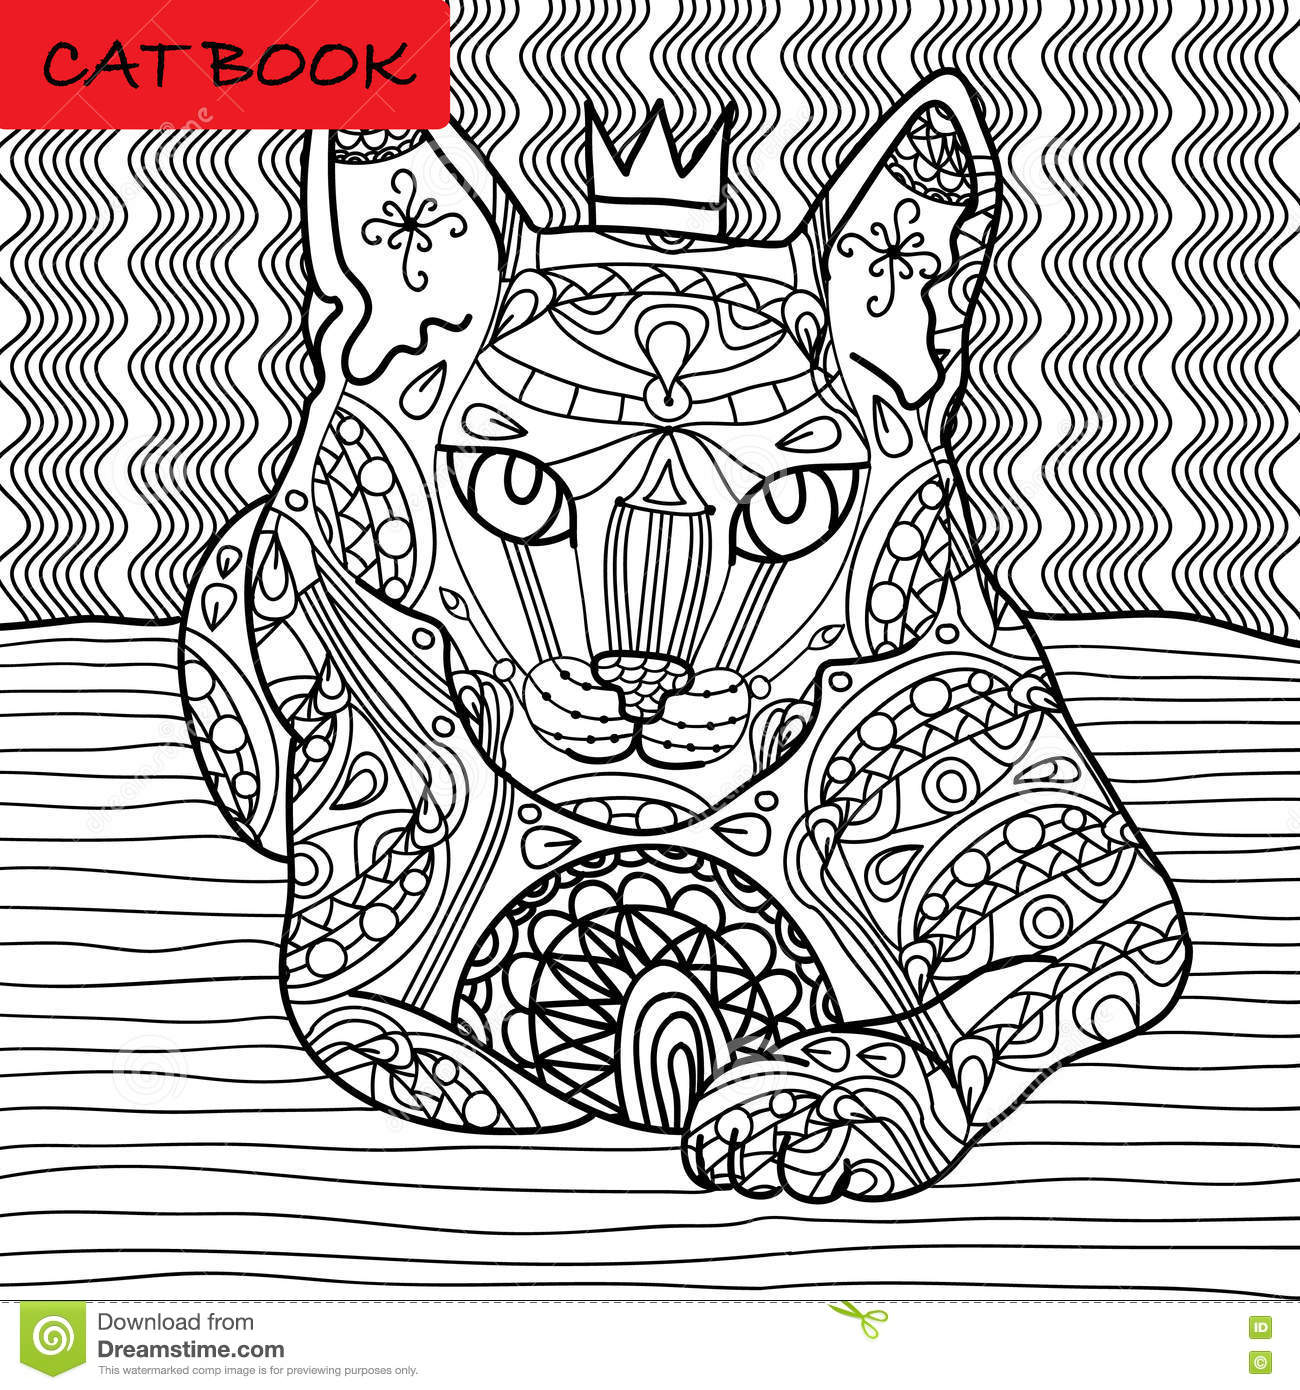 Coloring Cat Page For Adults Majestic With The Crown Looks Pensive Hand Drawn